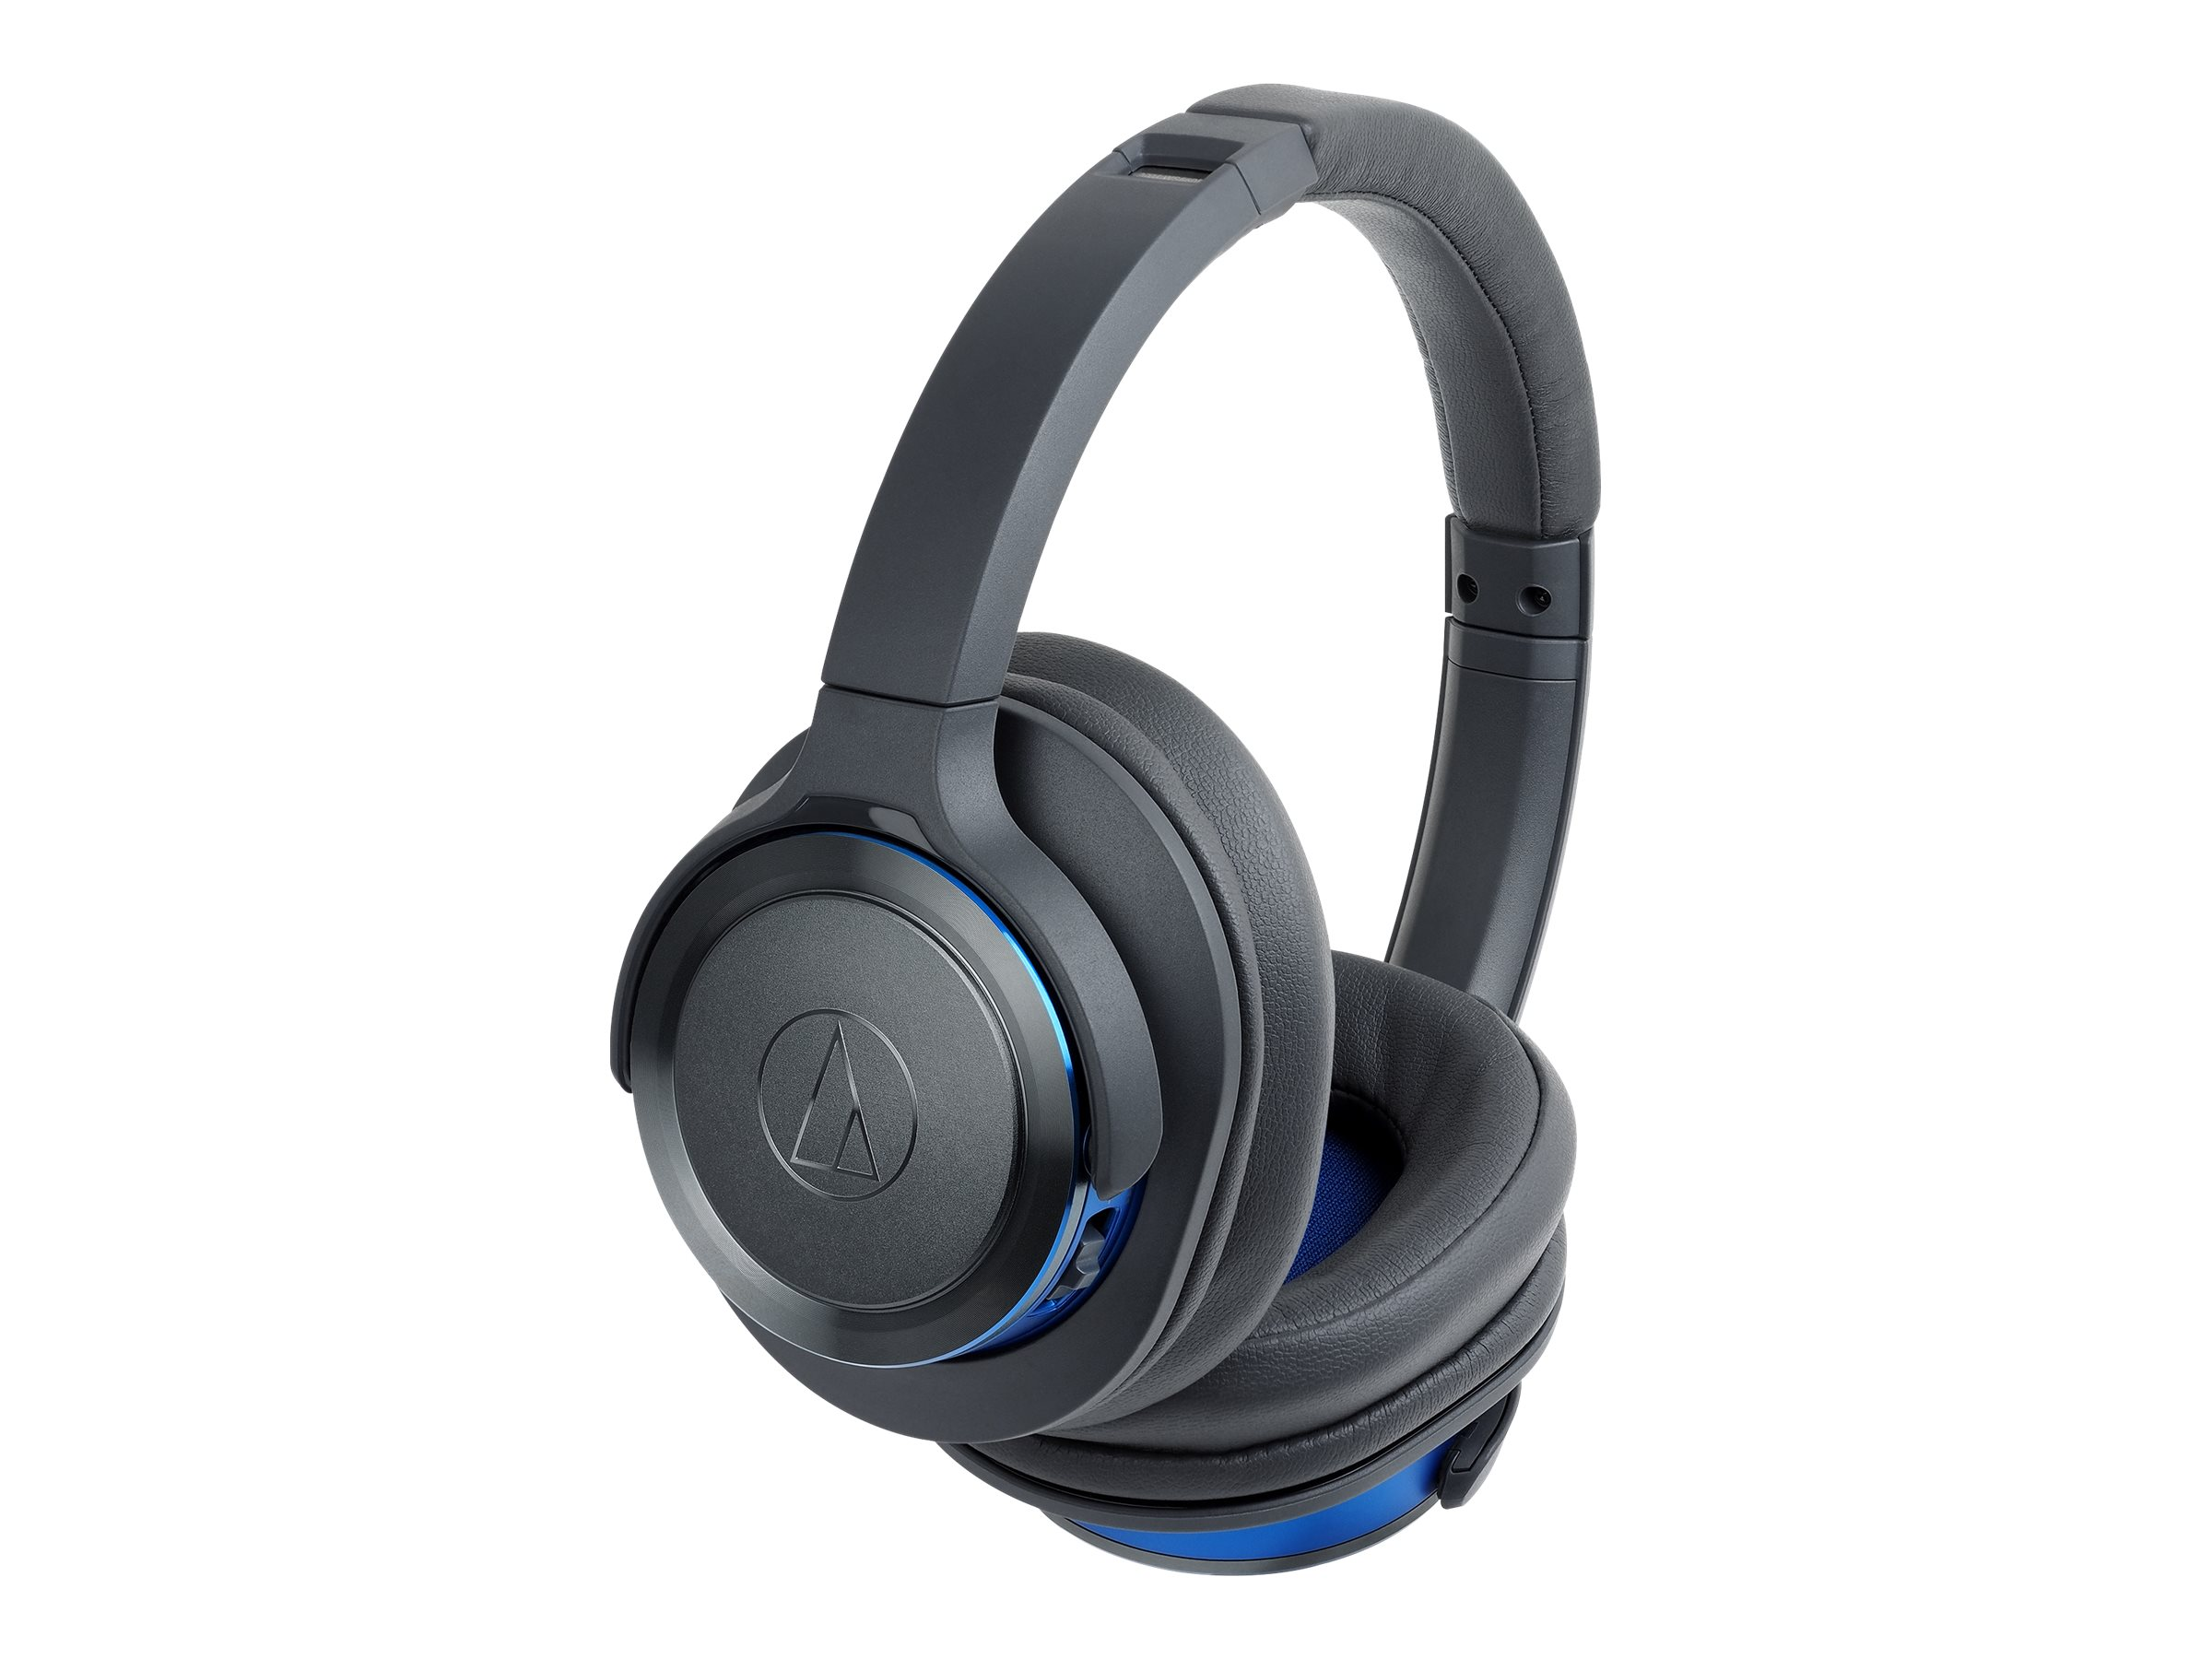 Audio-Technica SOLID BASS ATH-WS660BT - headphones with mic